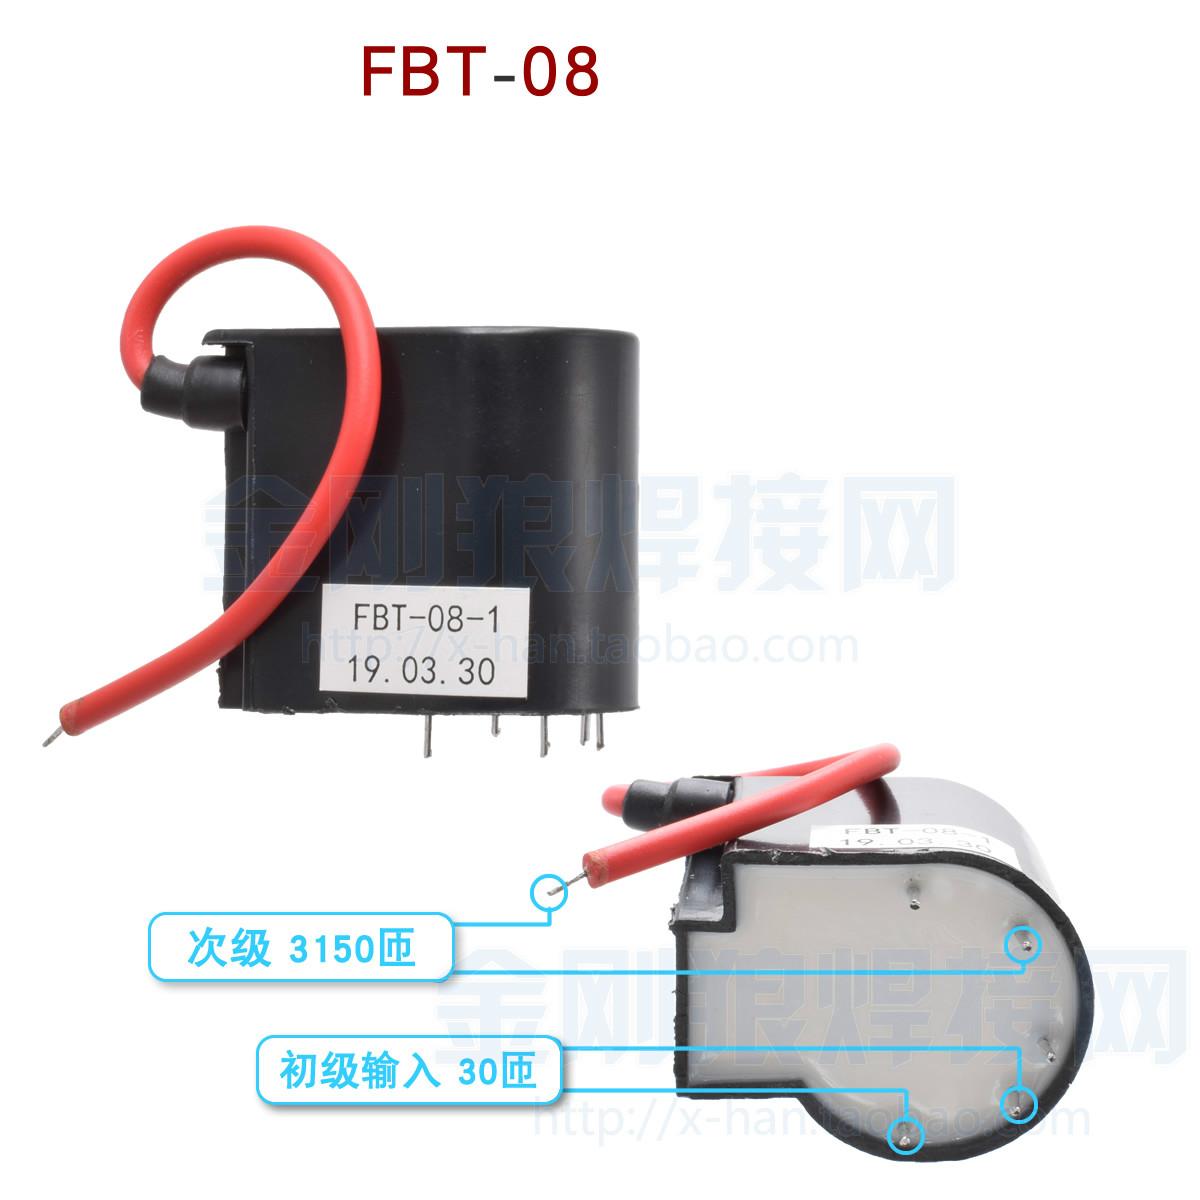 FBT-08 High Voltage Package 5 Feet Inverter Welding Machine Arc Starting Plate High Voltage Plate High Frequency Arc Starting